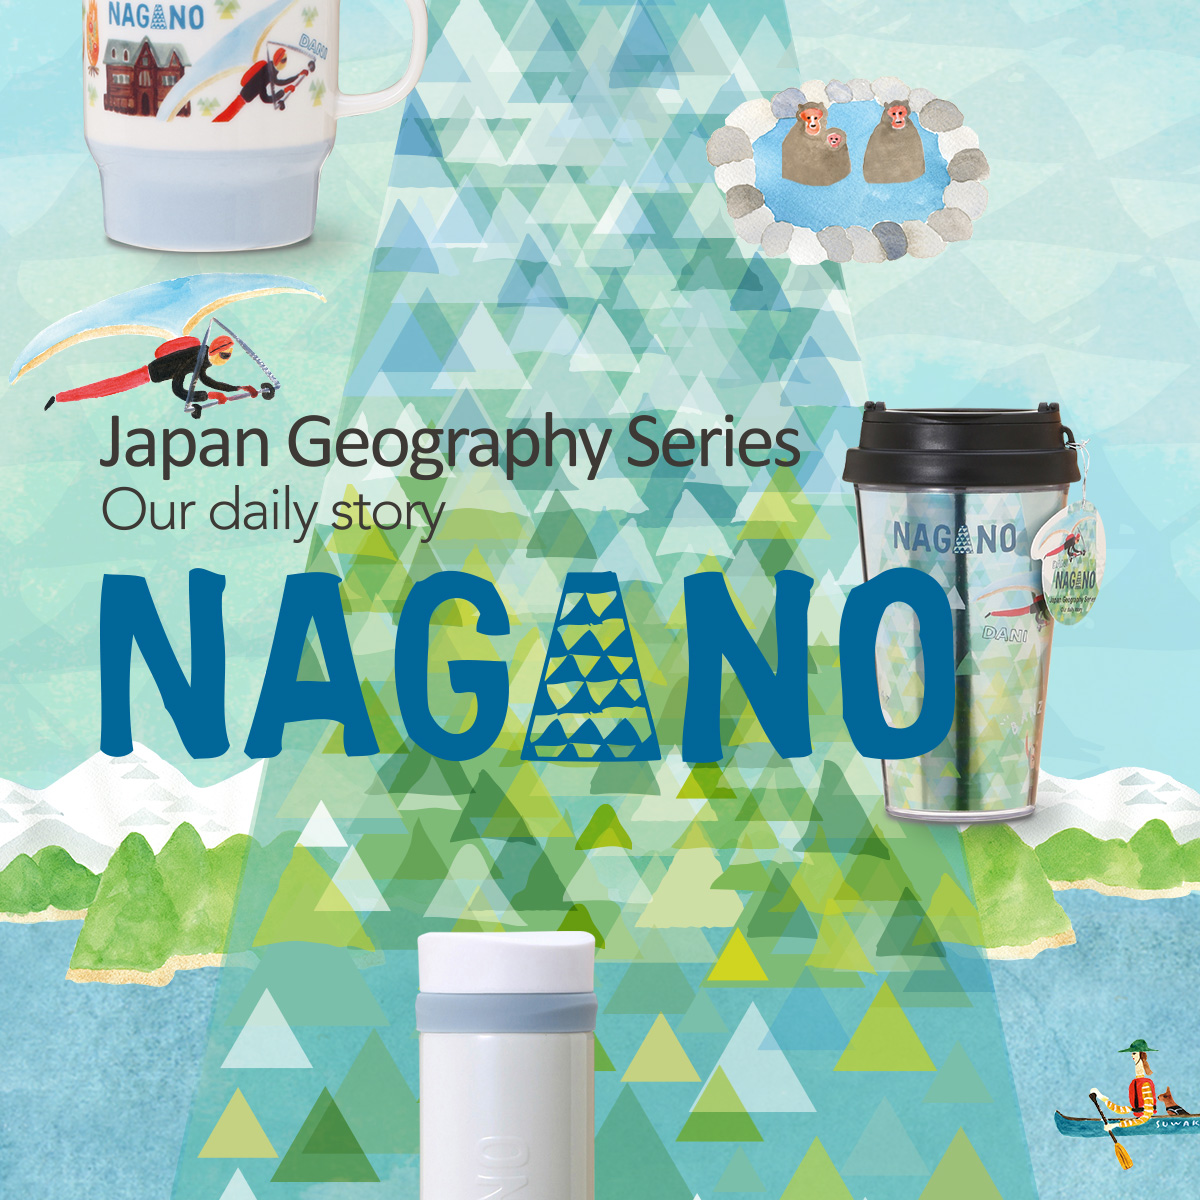 Japan Geography Series 長野